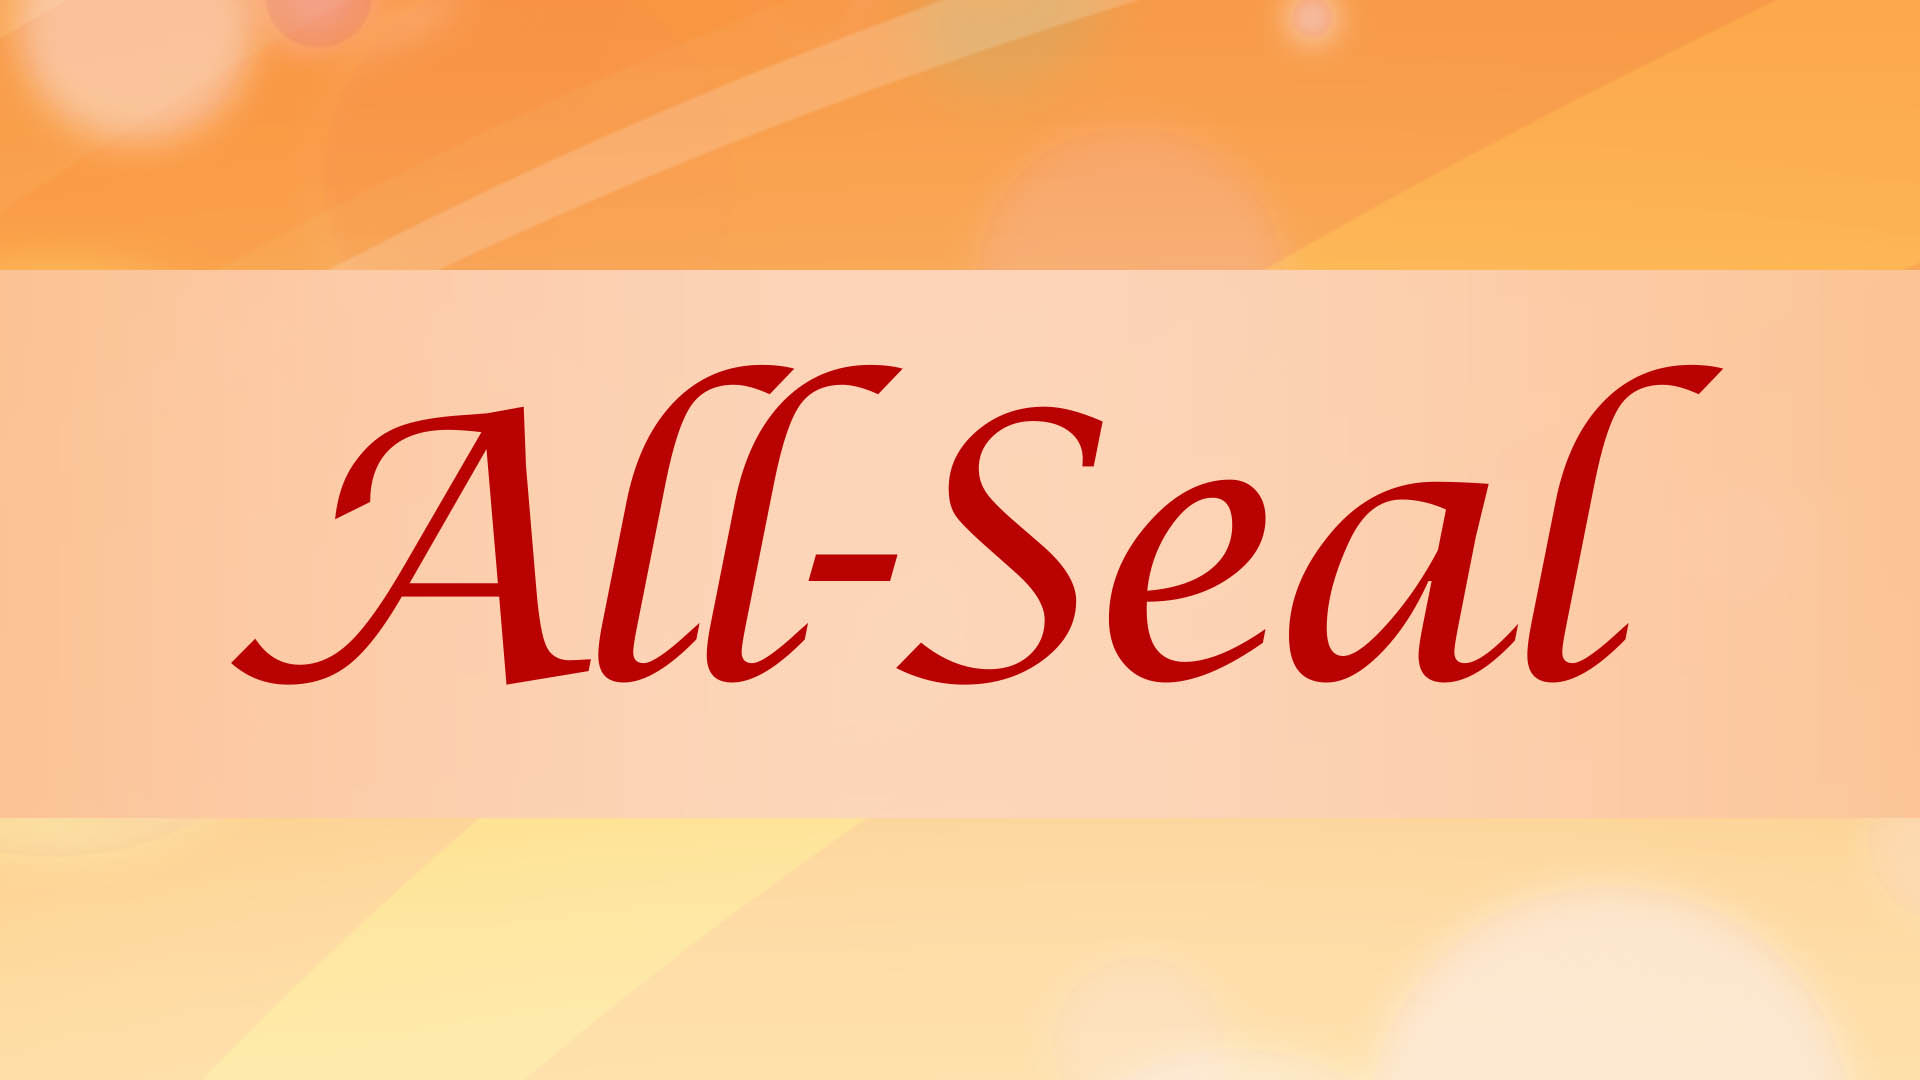 All Seal